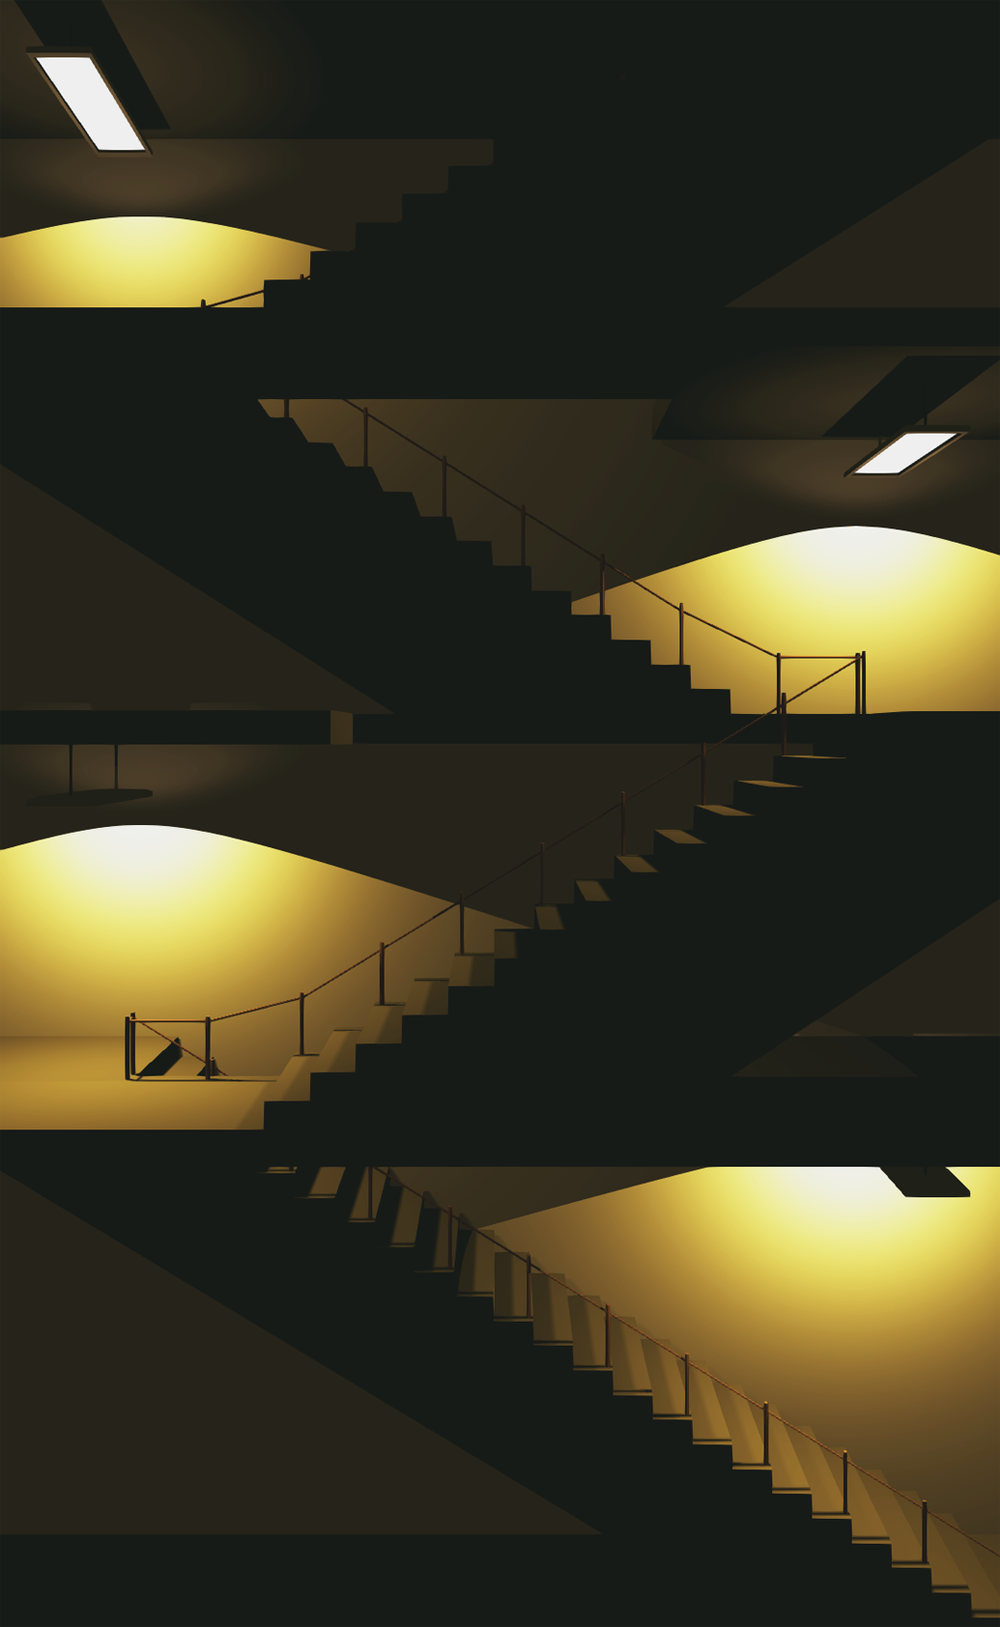 Stairwell_1750.png